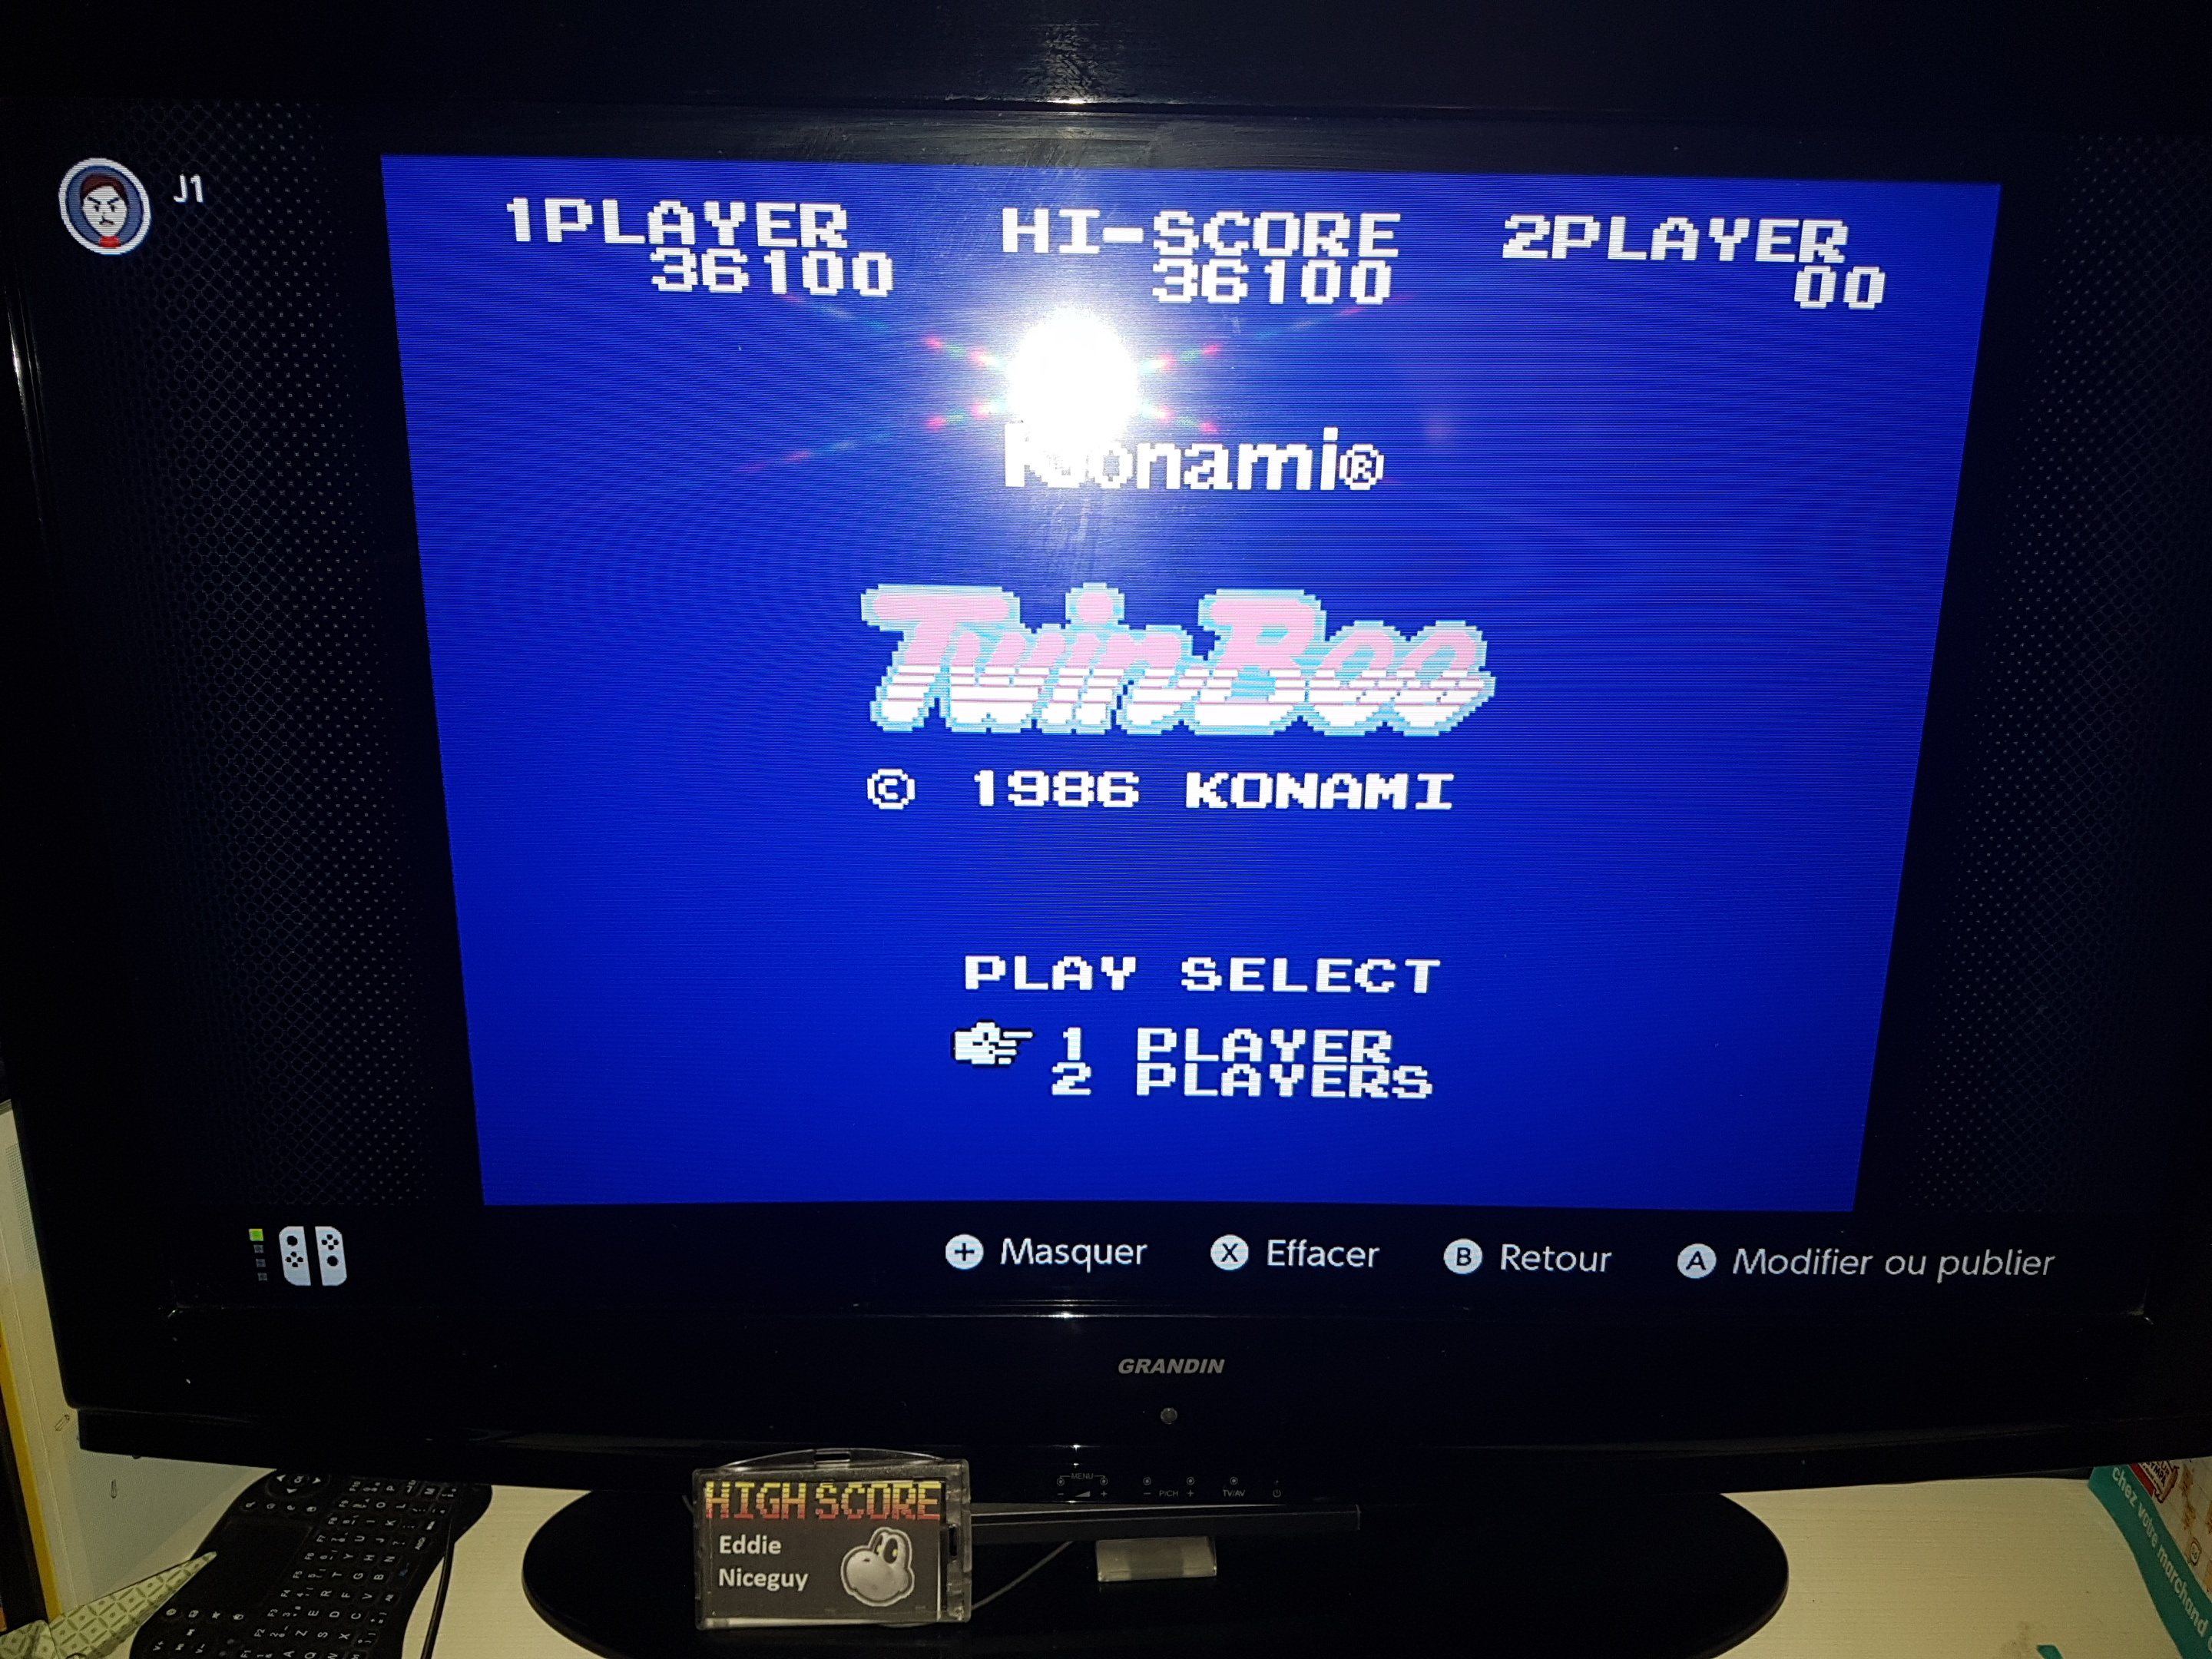 EddieNiceguy: TwinBee (NES/Famicom Emulated) 36,100 points on 2020-05-22 16:40:17